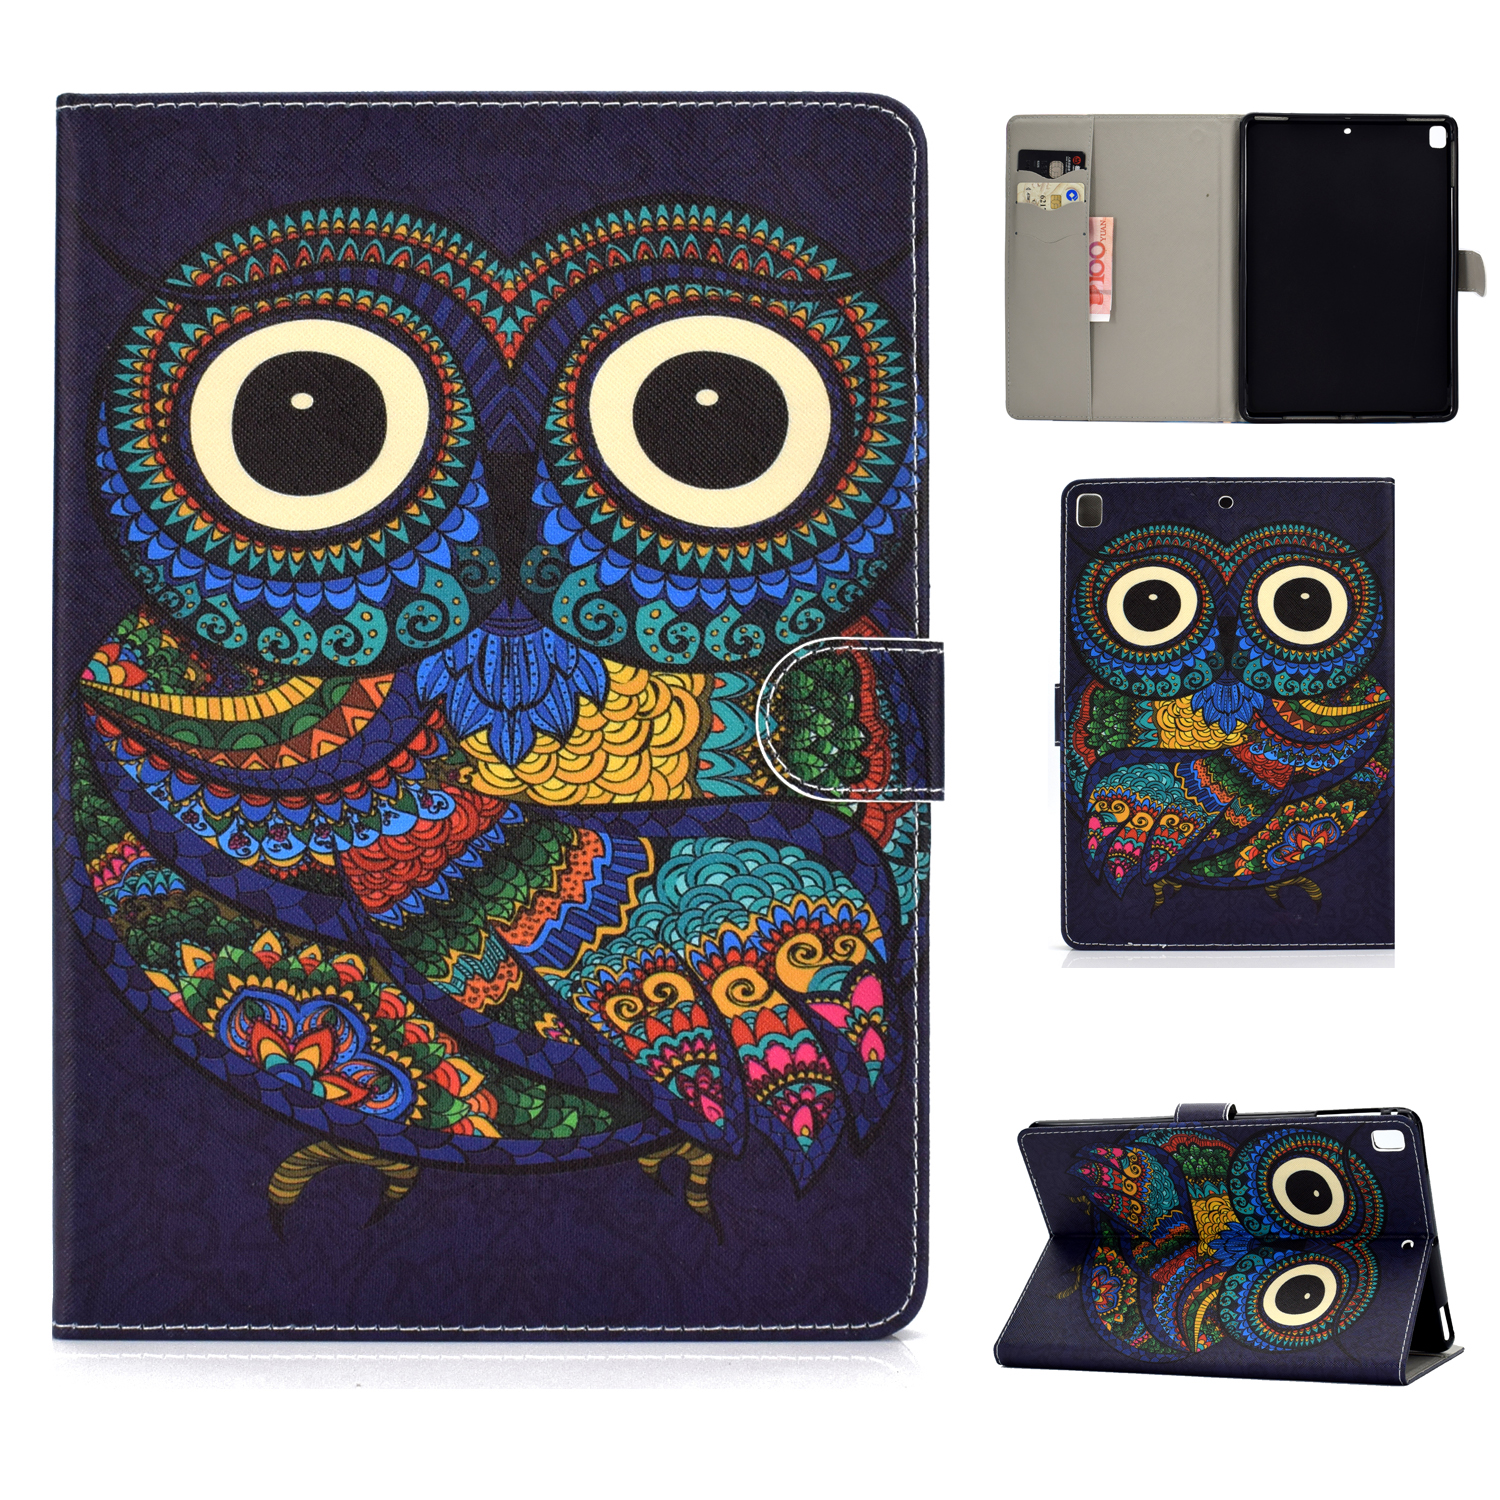 For iPad 5/6/7/8/9-iPad Pro9.7-iPad 9.7 Laptop Protective Case Color Painted Smart Stay PU Cover owl